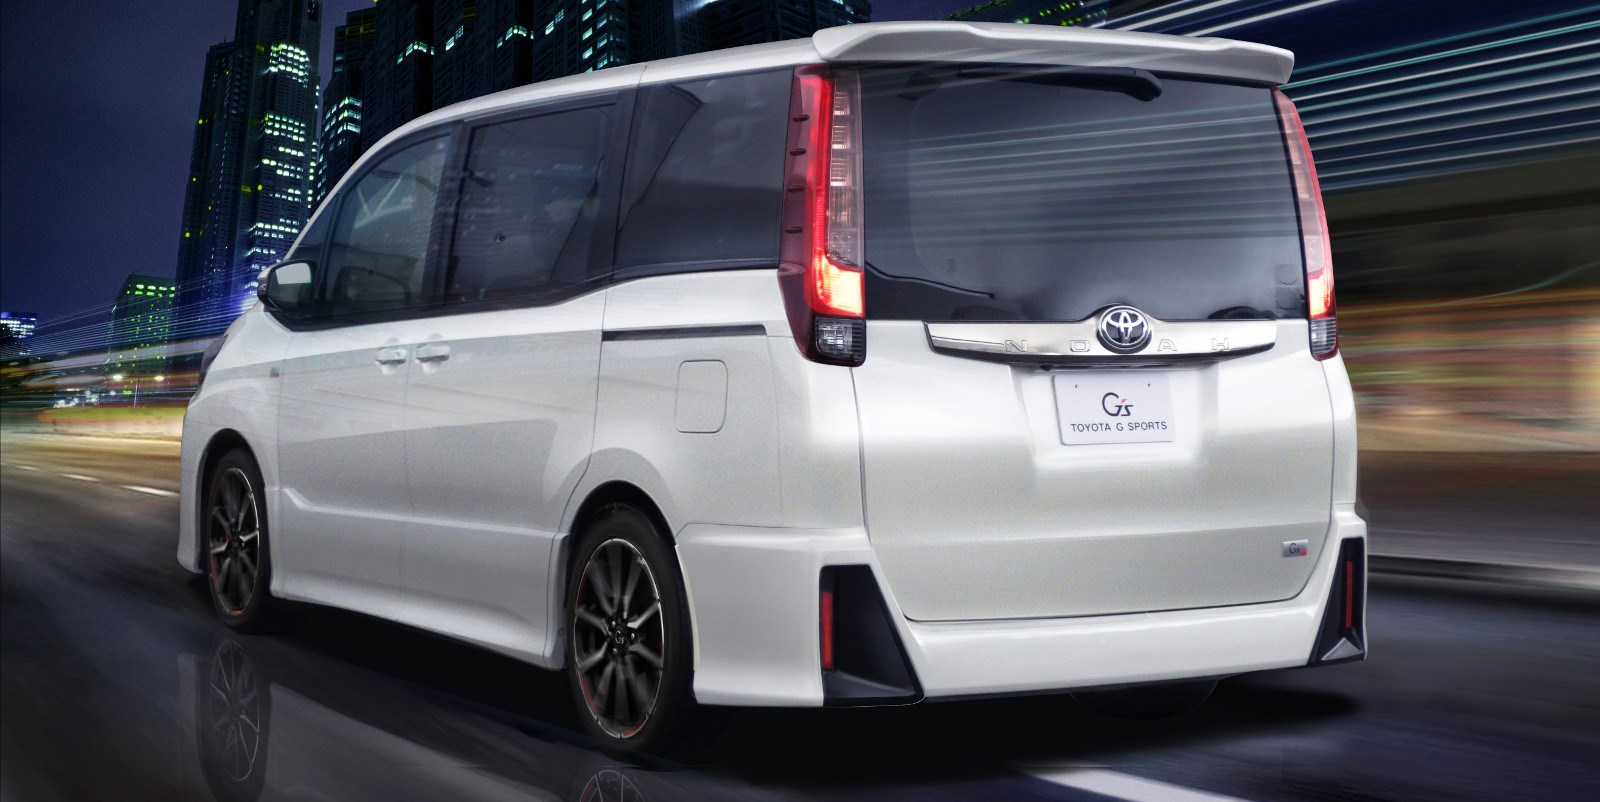 Toyota Noah G S And Voxy G S Concepts Vehiclejar Blog